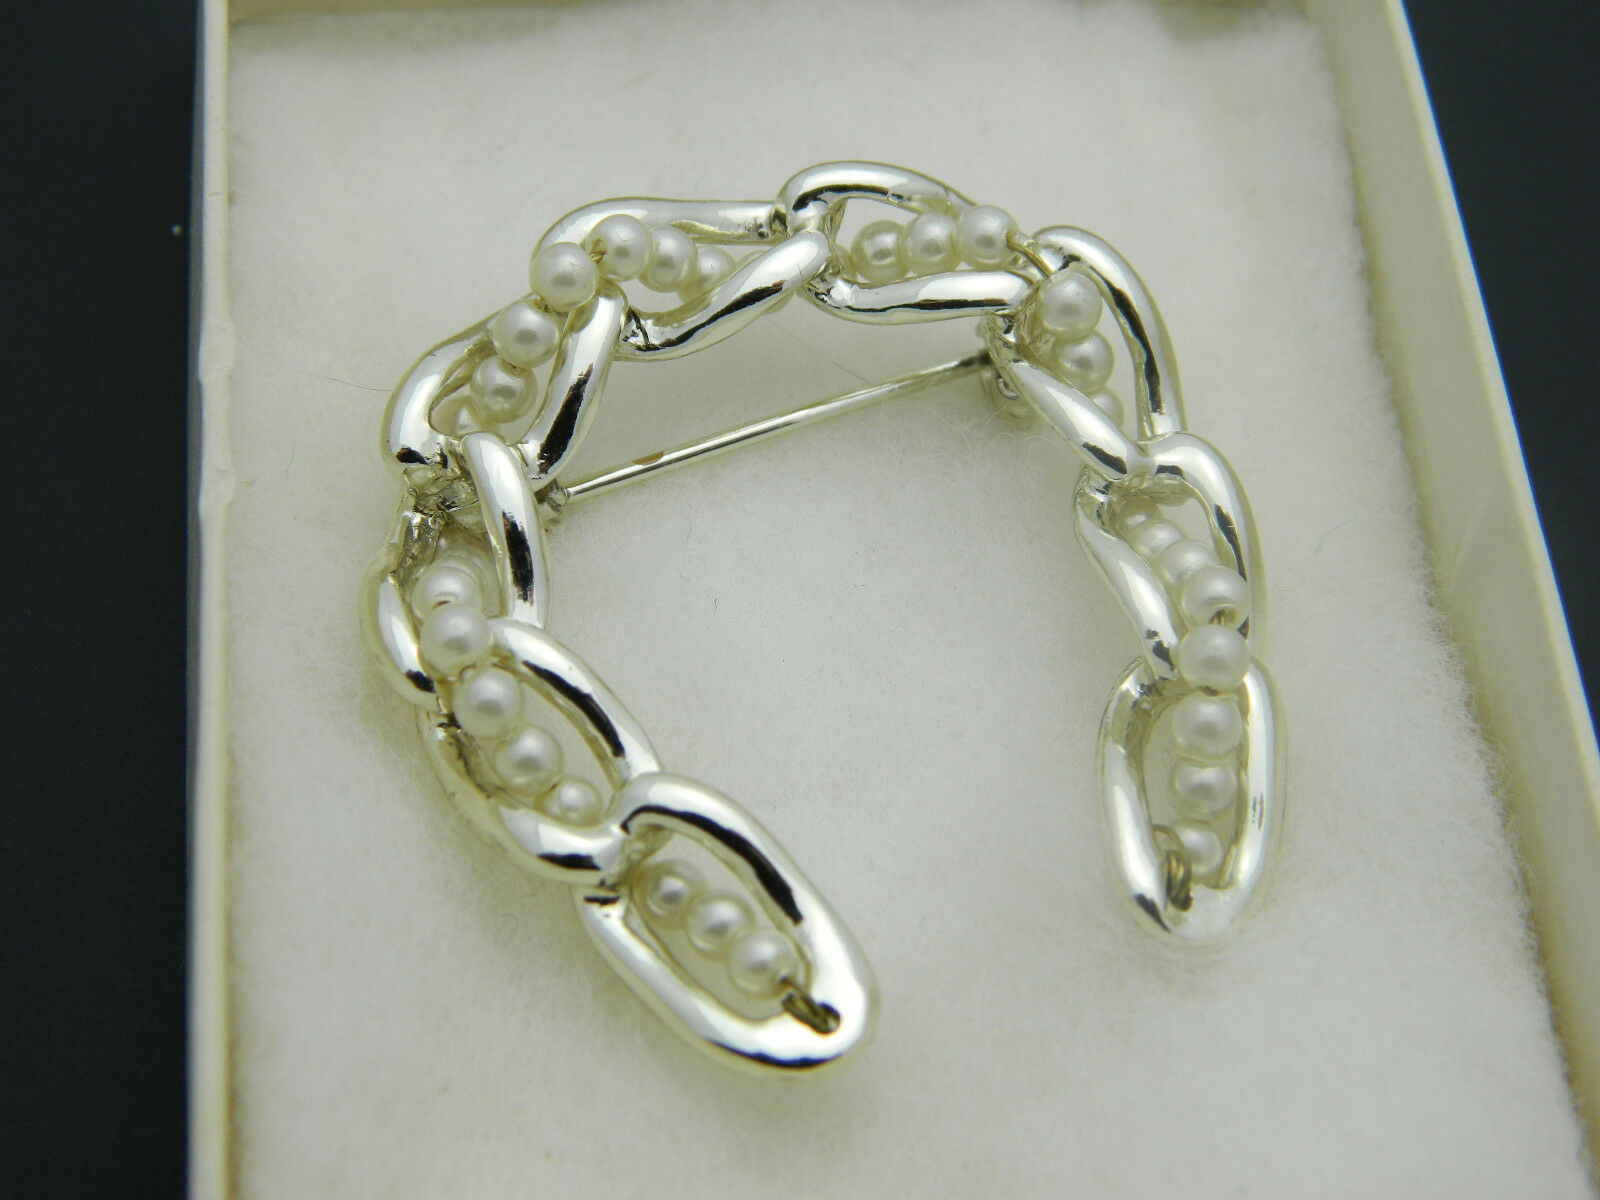 Faux Pearl Chain Link Horseshoe Pin Brooch Vintage Light Gold Tone image 7